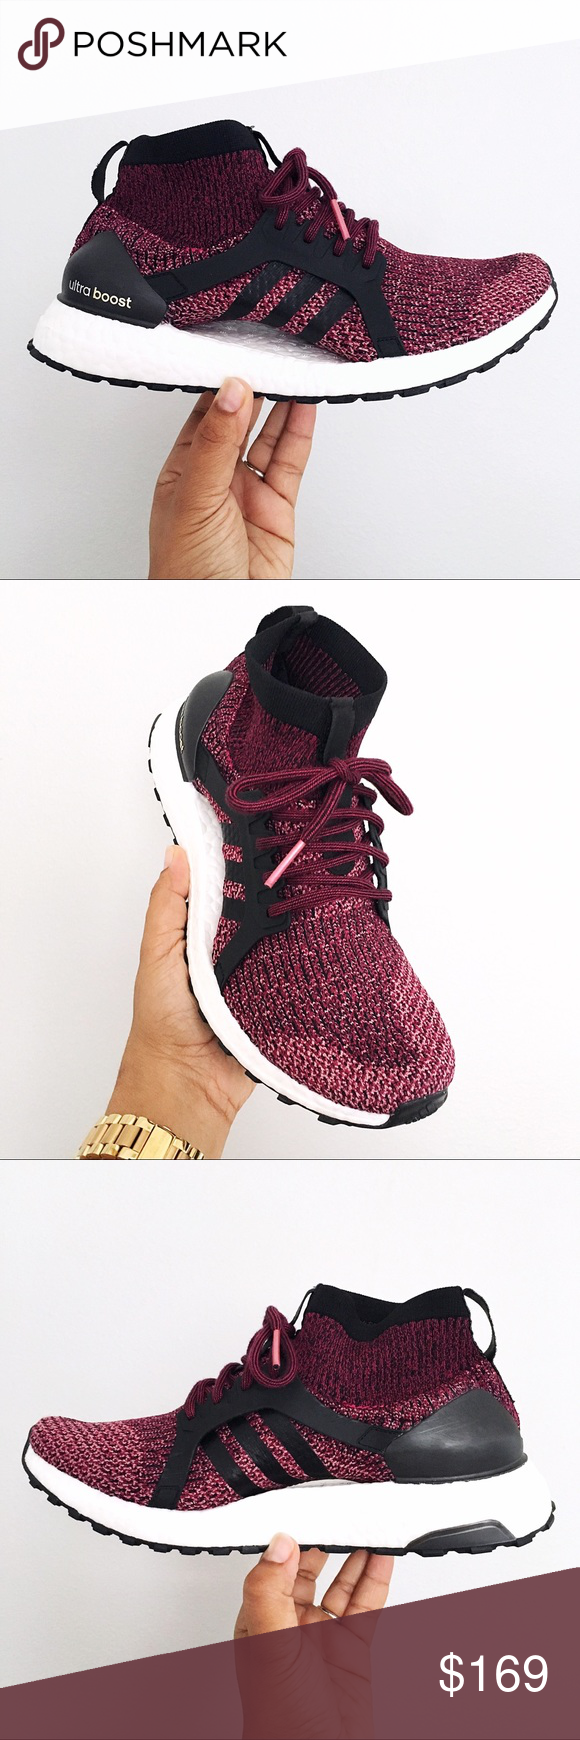 560190e3f Adidas UltraBOOST X All Terrain Women Mystery Ruby Brand Nee in Box with  Lid - Adidas